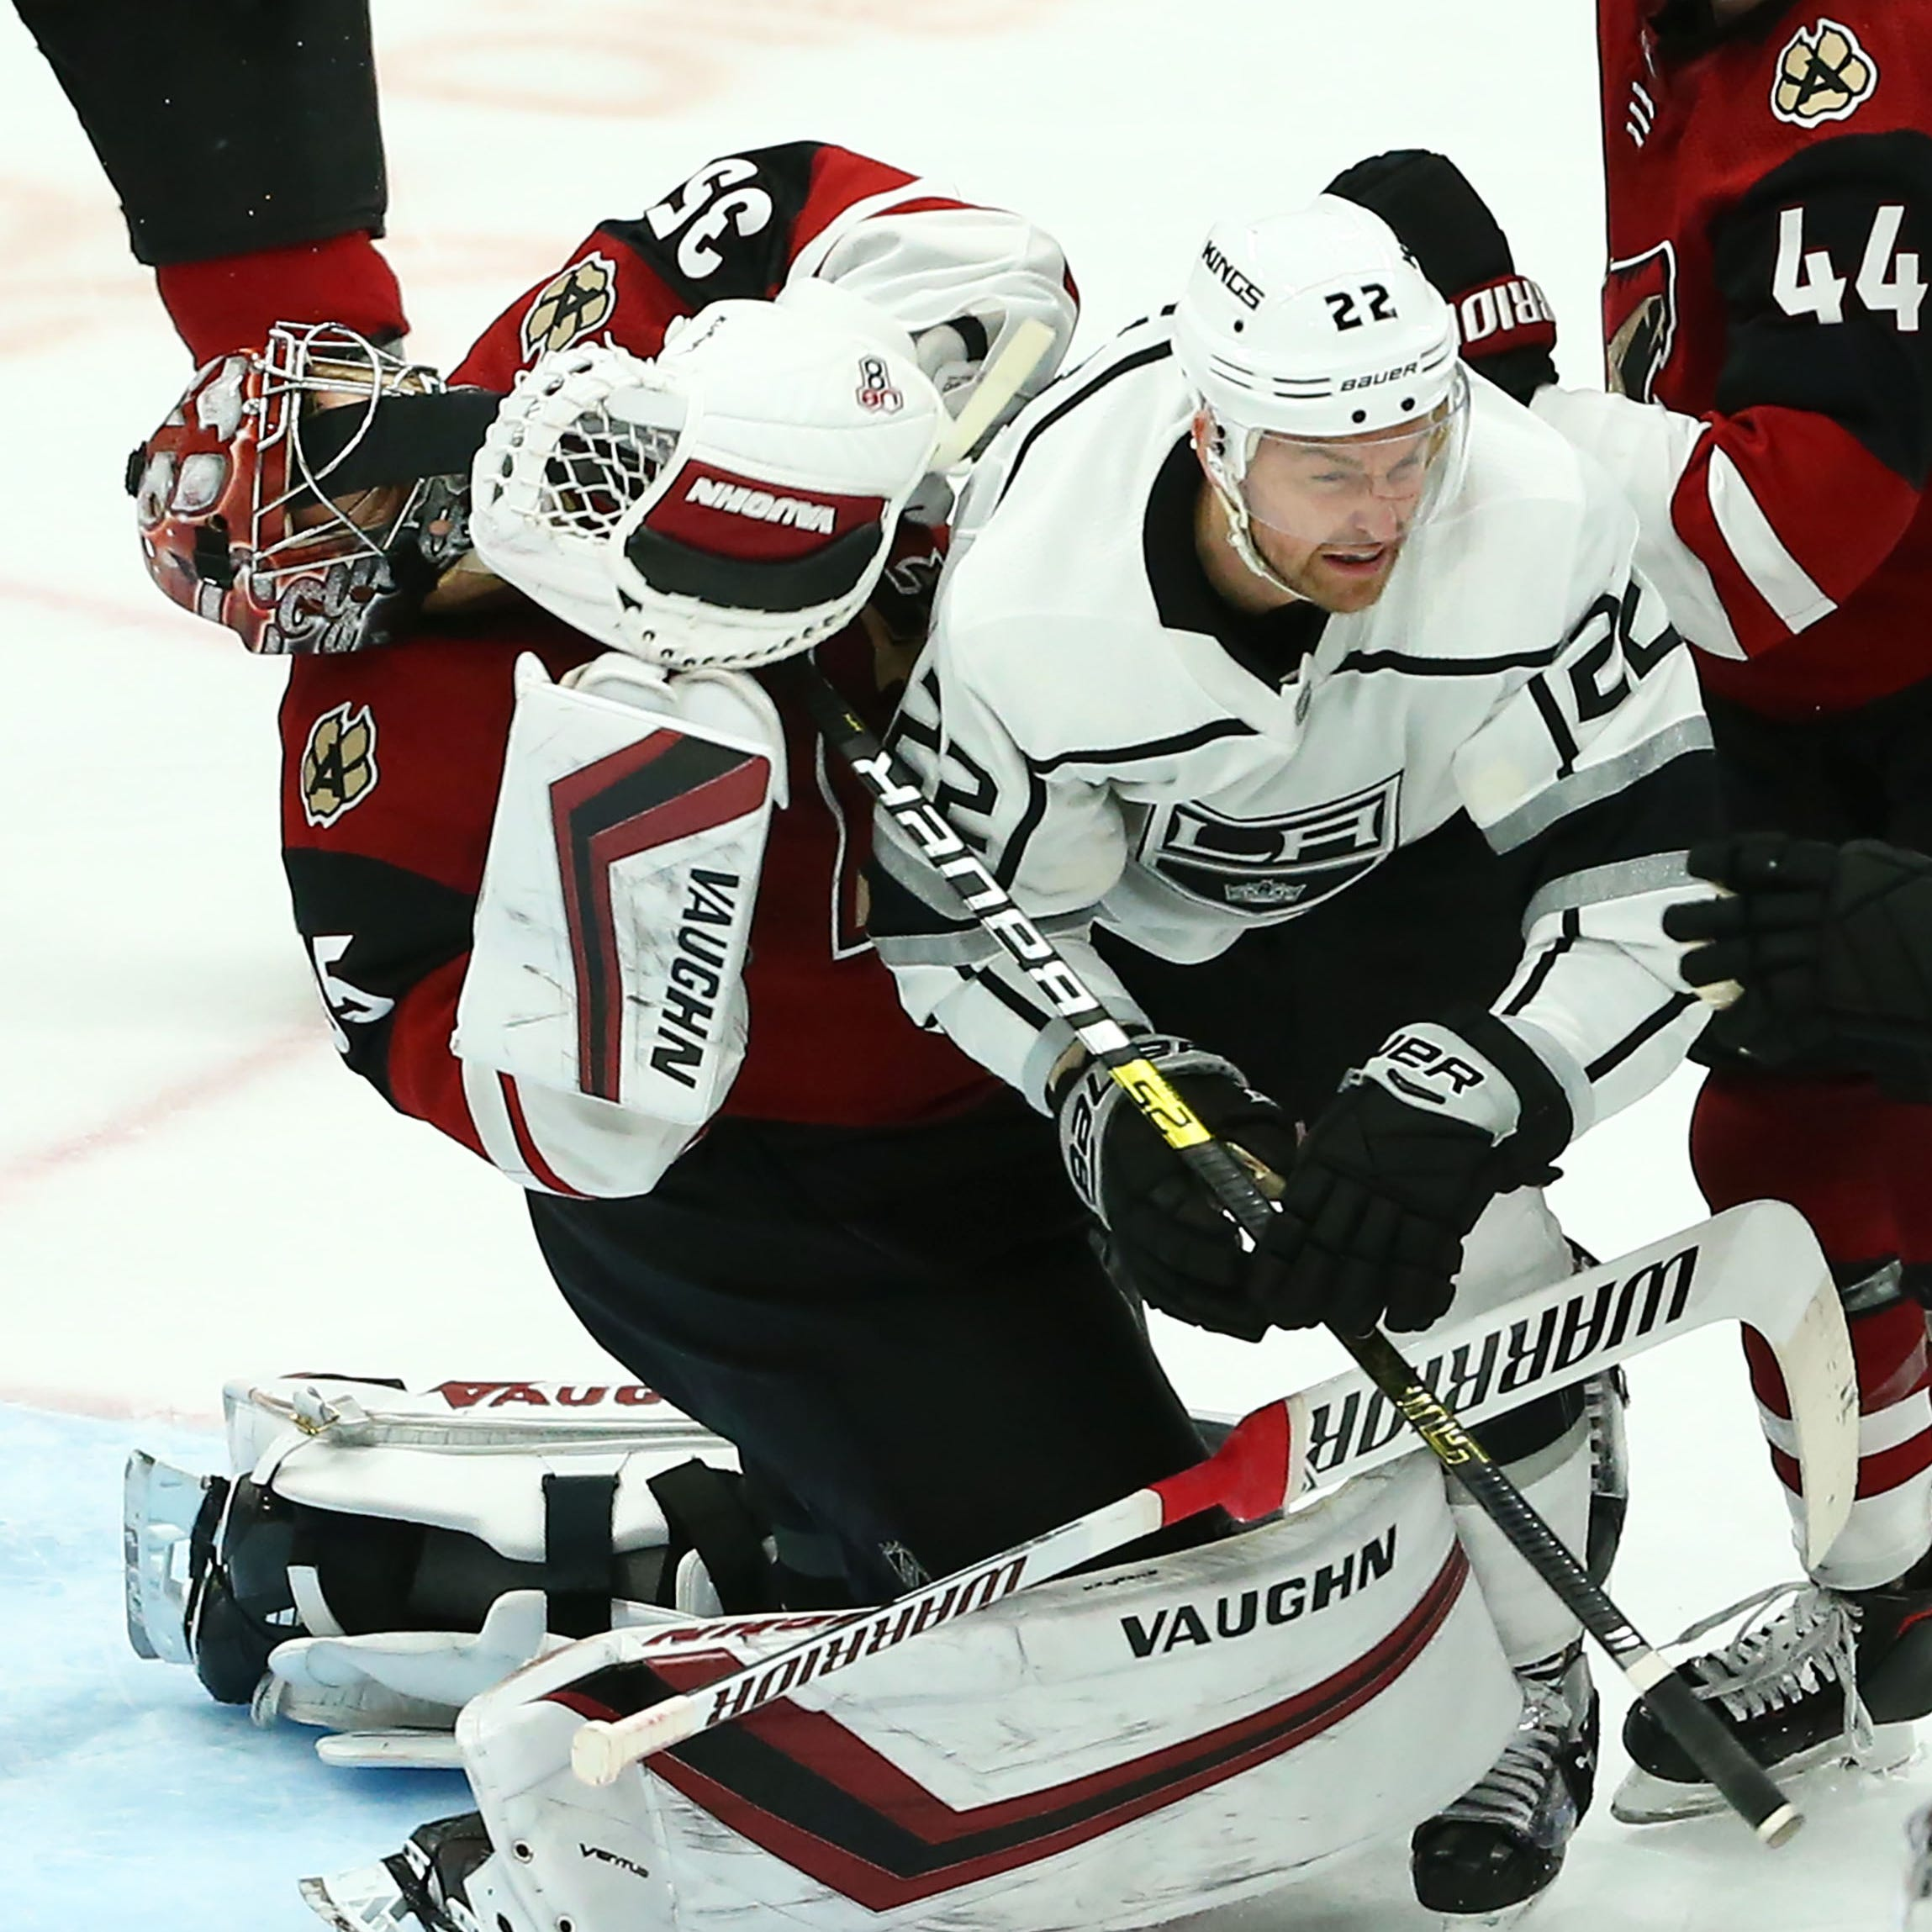 Insult and injury: Darcy Kuemper, Coyotes suffer blow to playoff hopes with loss to Kings